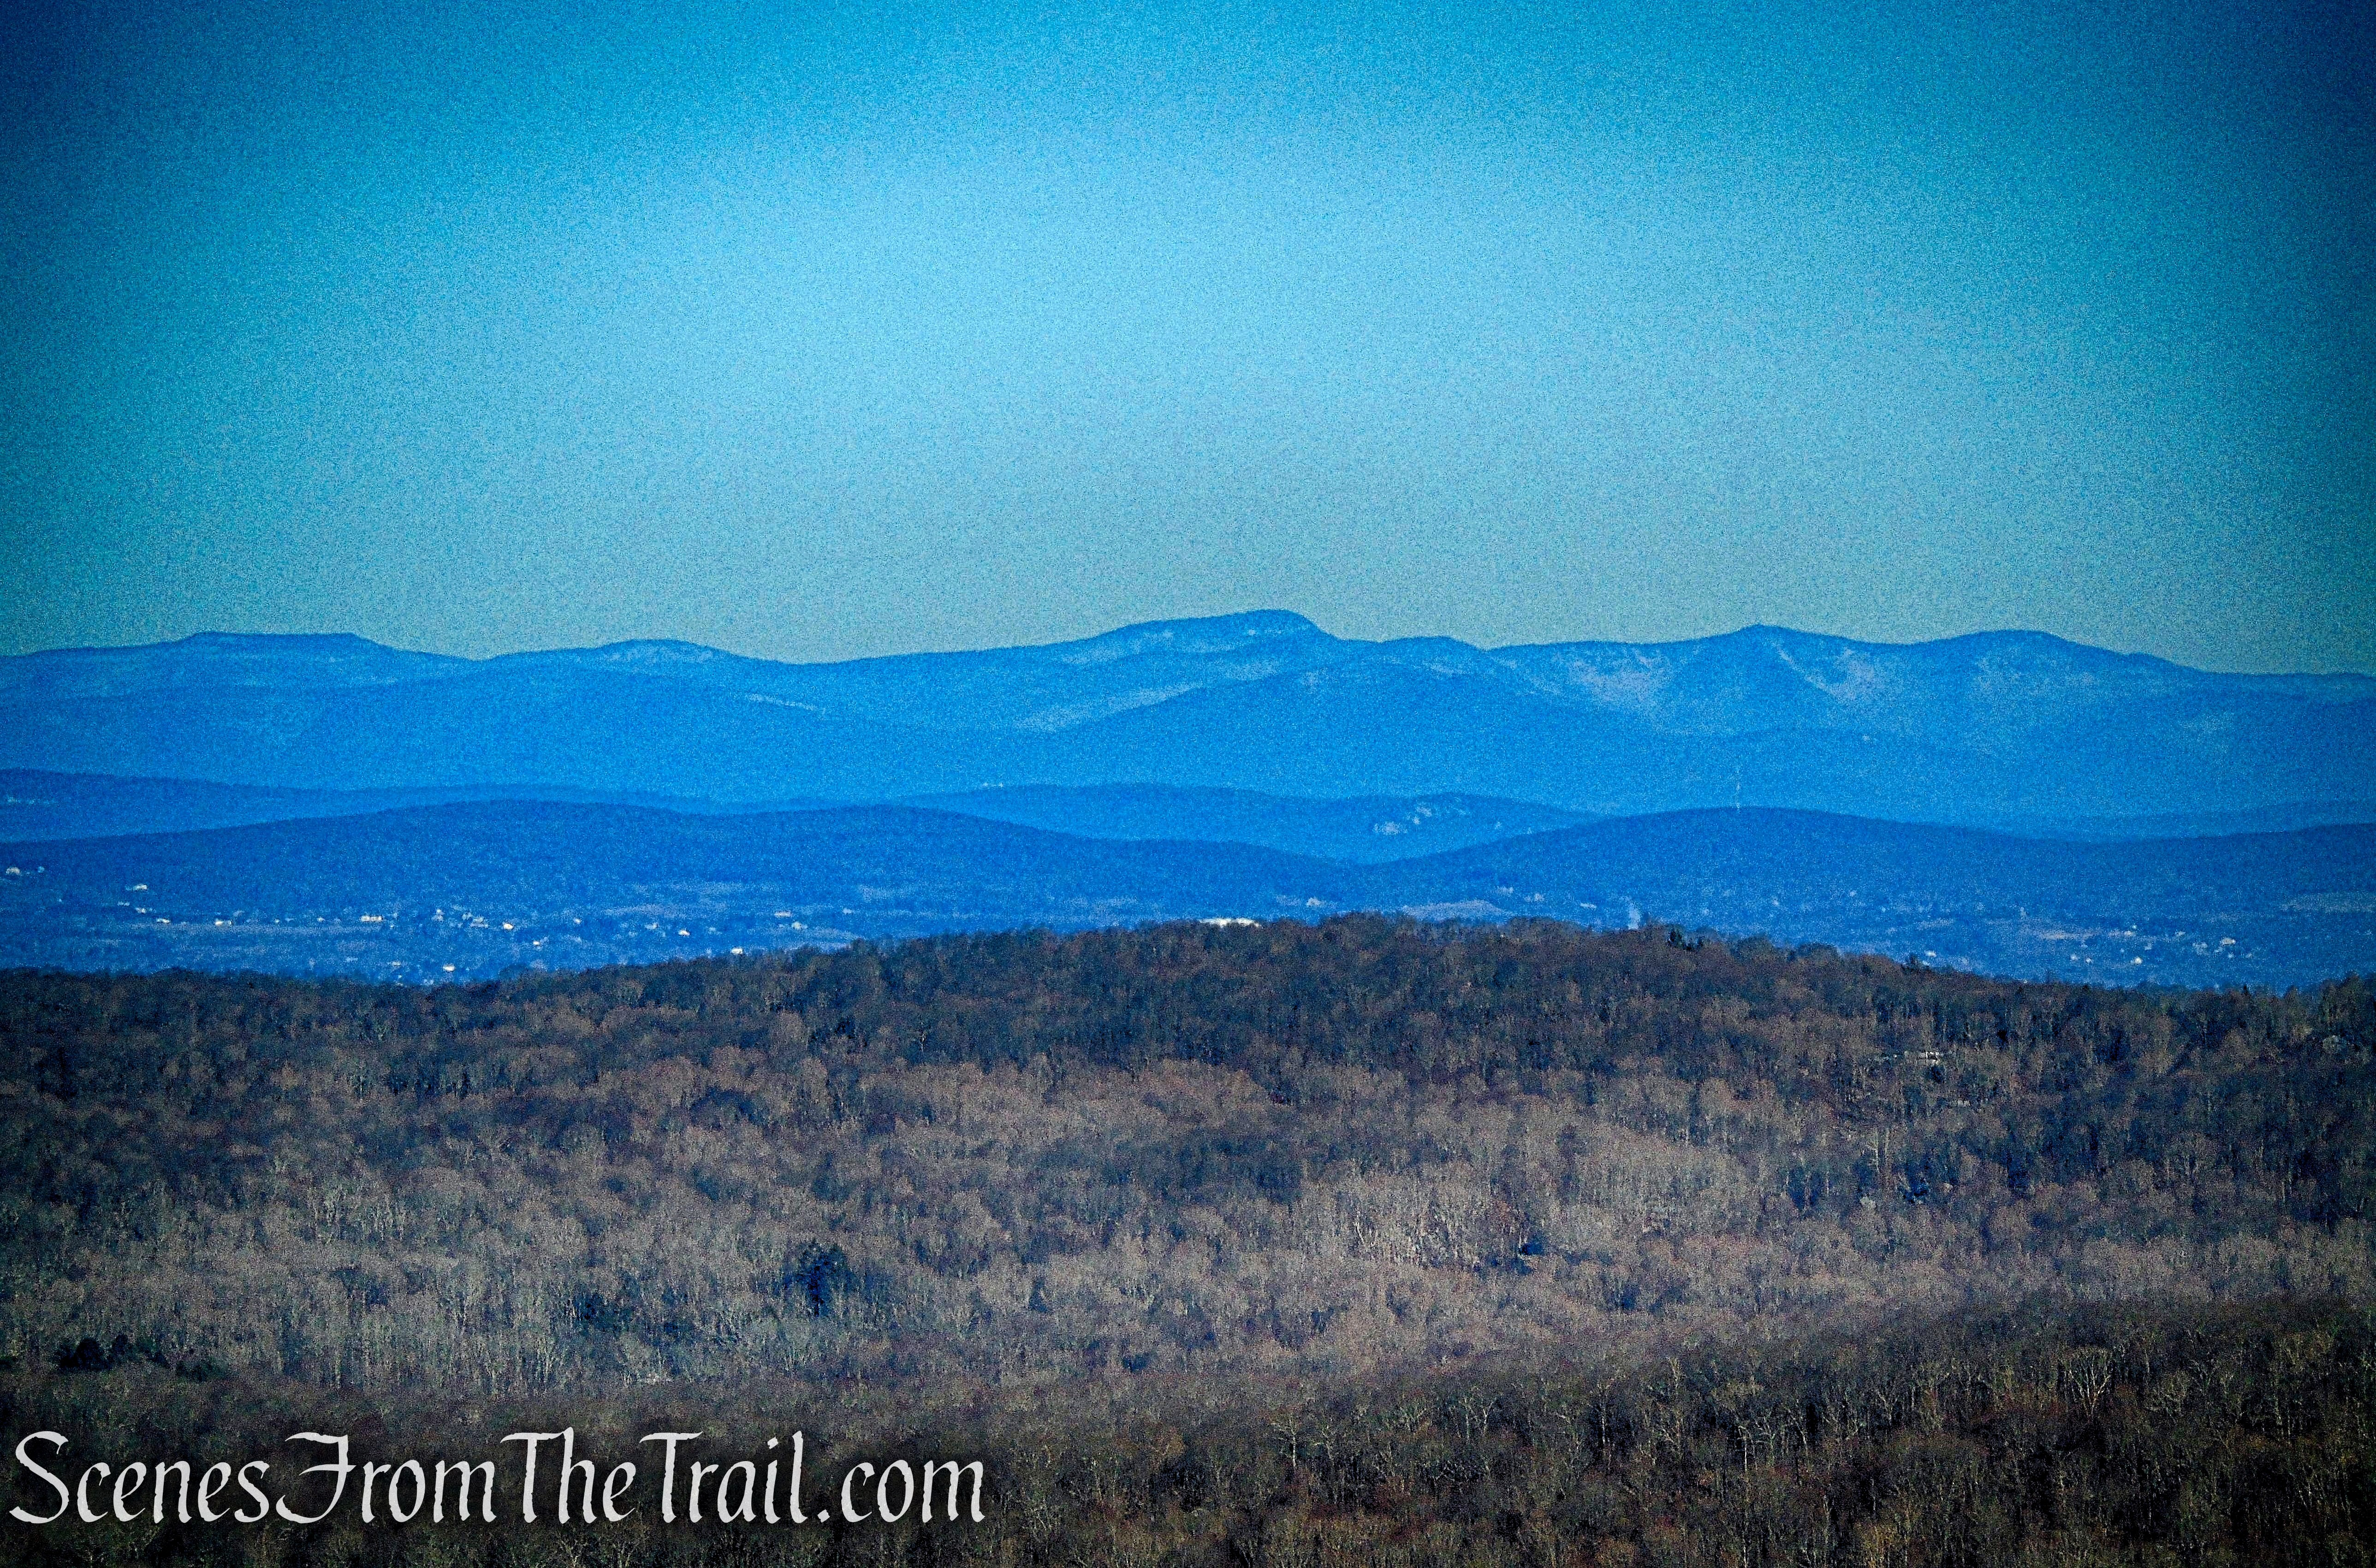 Catskill Mountains from Mount Nimham Fire Tower